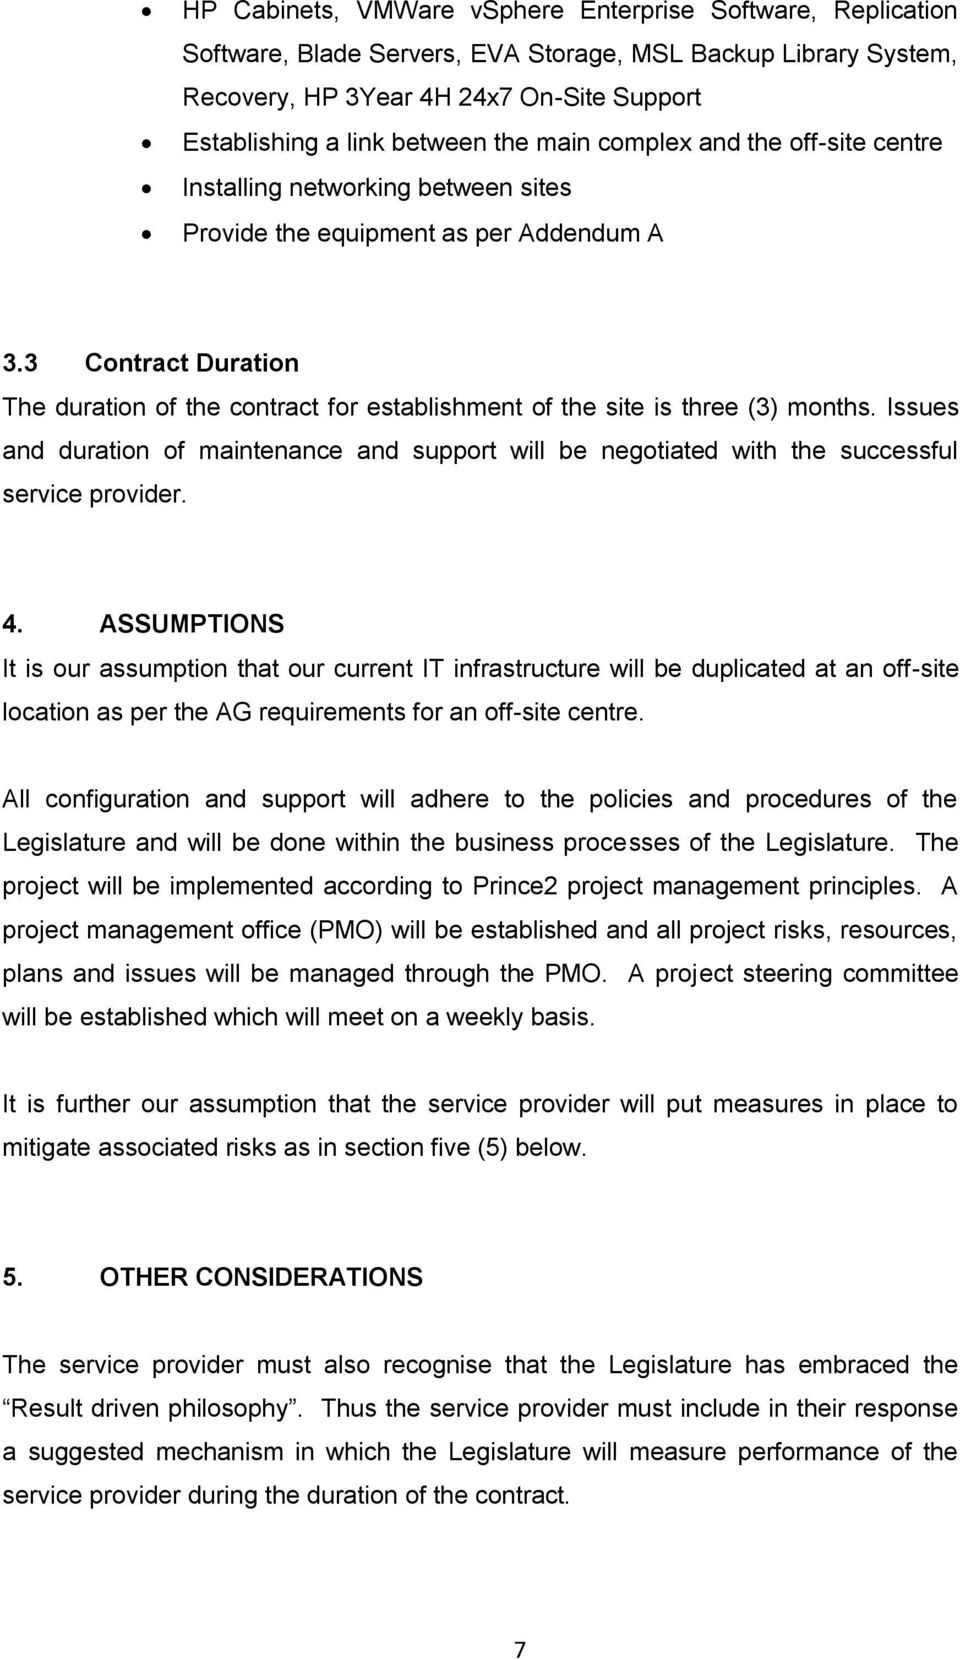 3 Contract Duration The duration of the contract for establishment of the site is three (3) months.